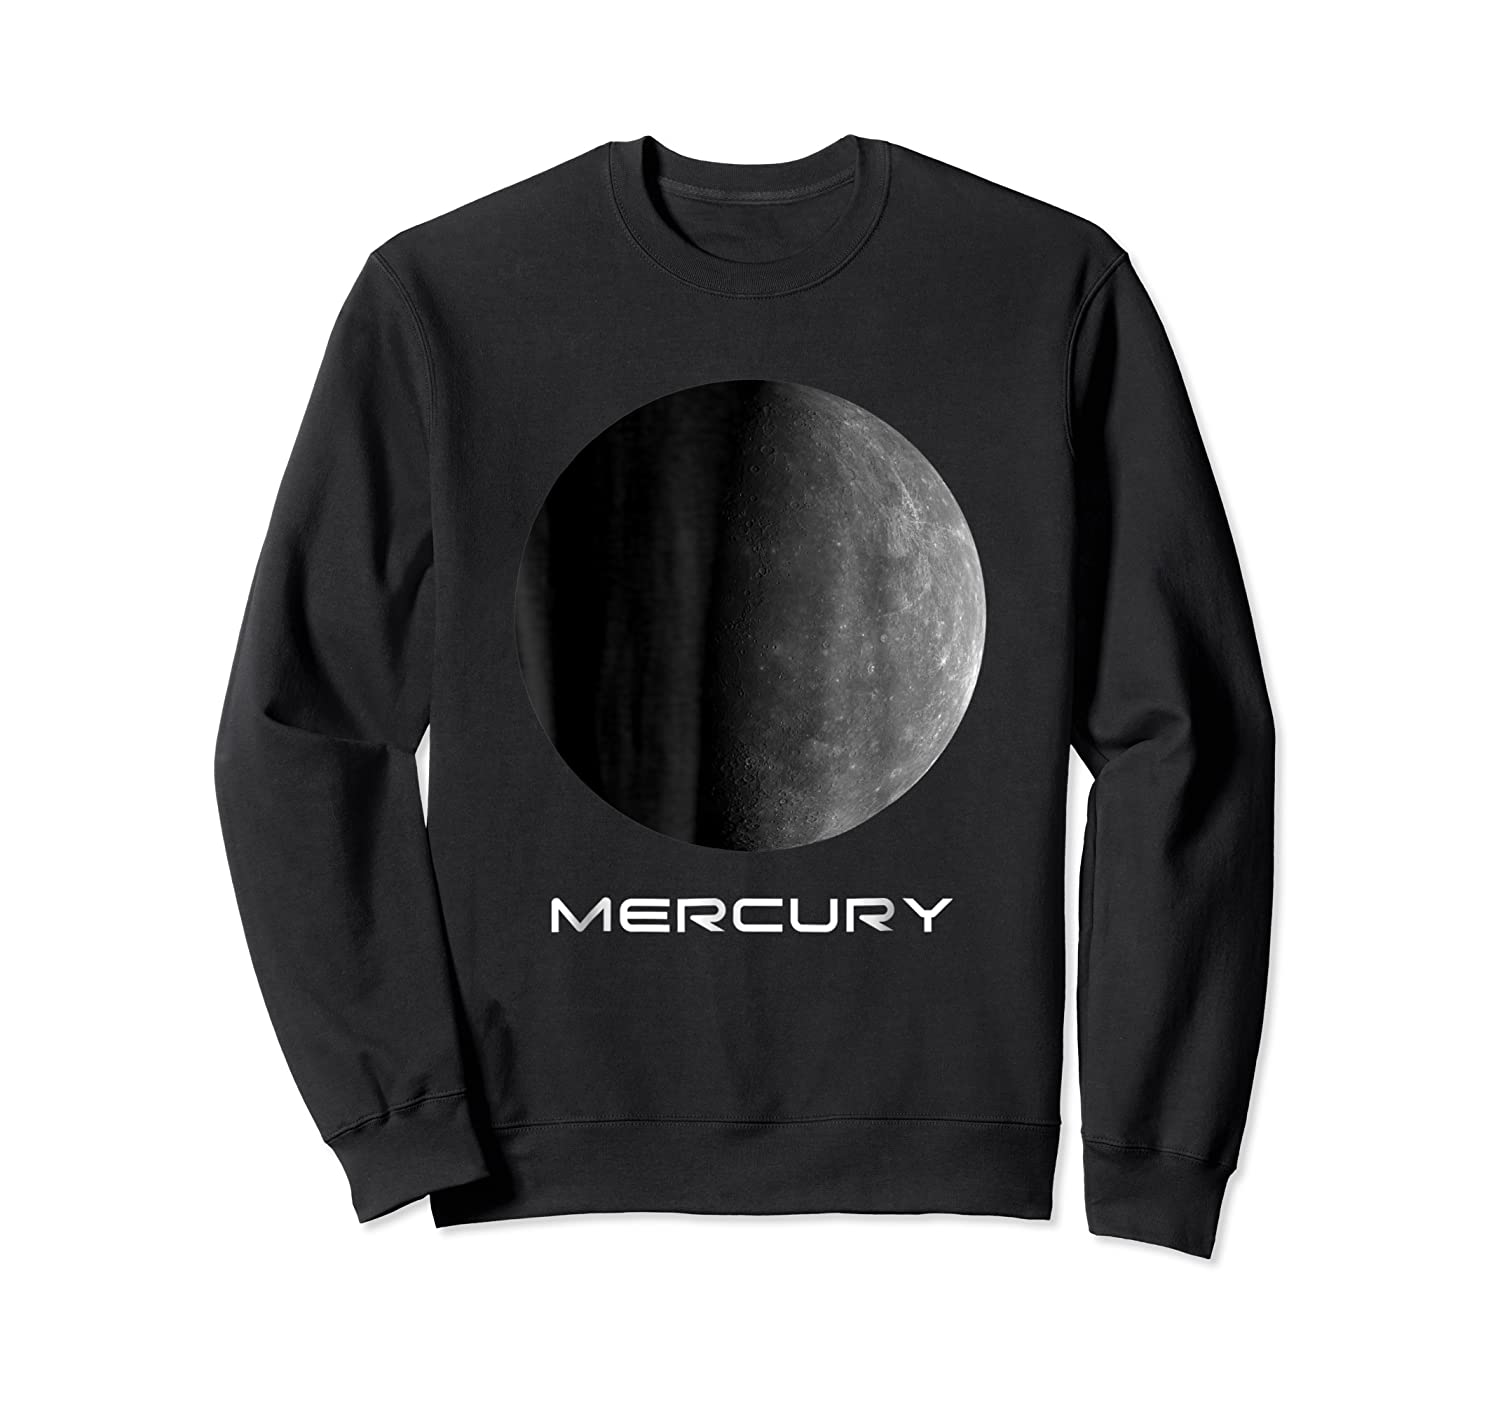 Mercury Perfect Gift For Astronomy Or Space Lovers Shirts Crewneck Sweater